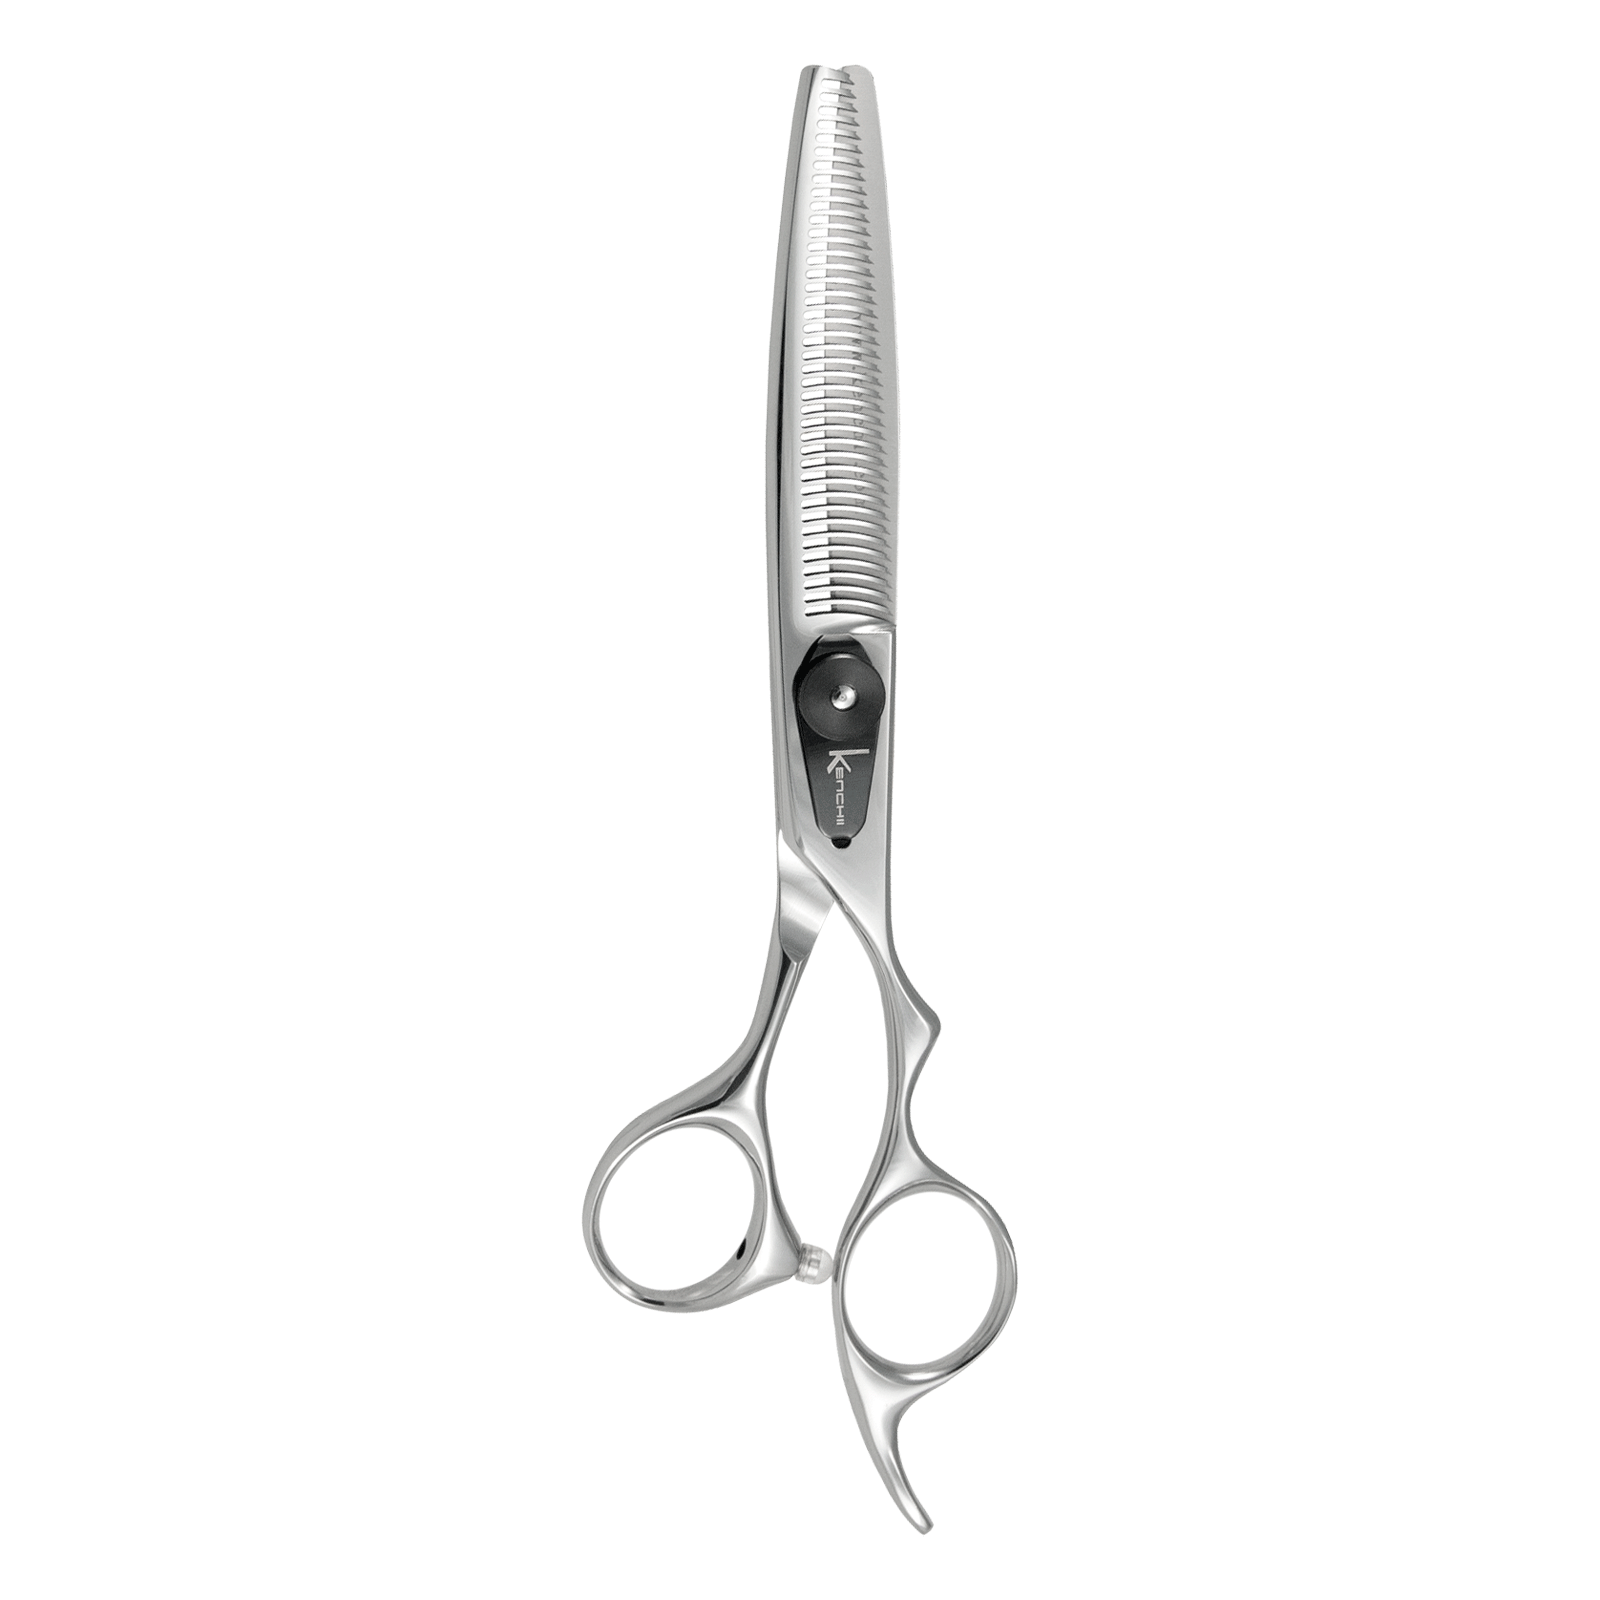 Kenchii Professional - X1 40-Tooth Thinning Shear